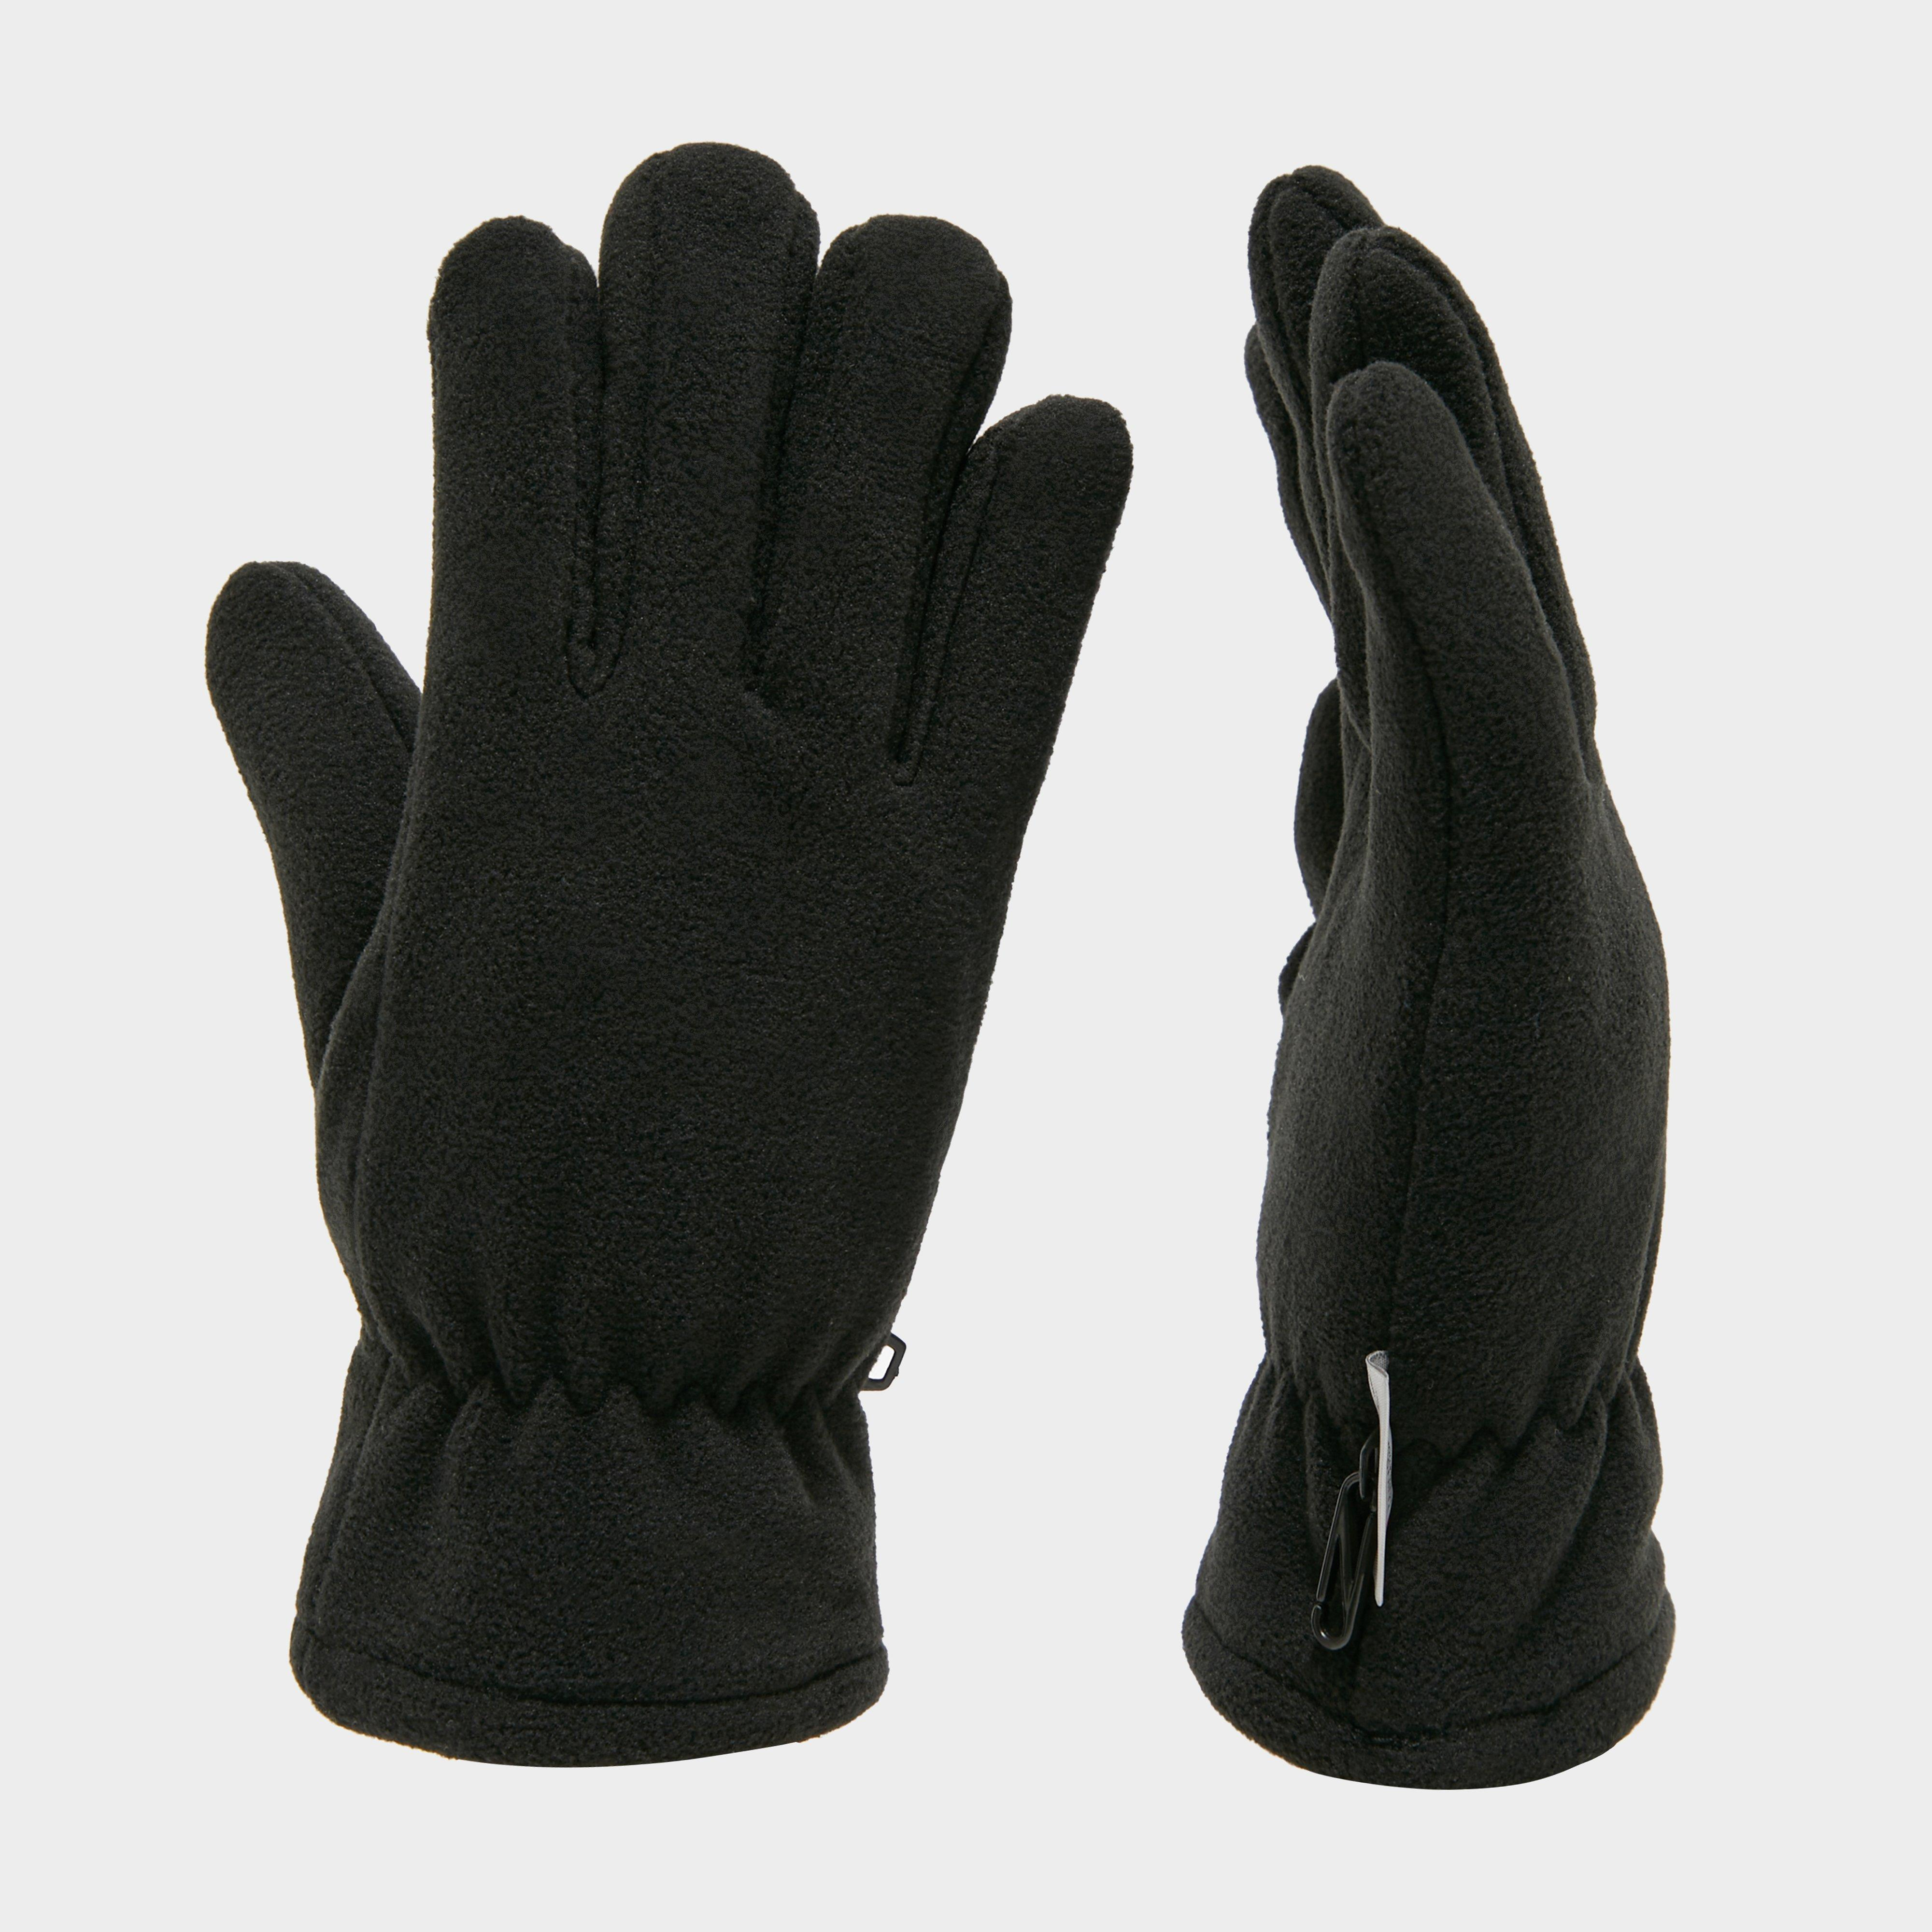 Peter Storm Thinsulate Double Fleece Gloves - Black, Black